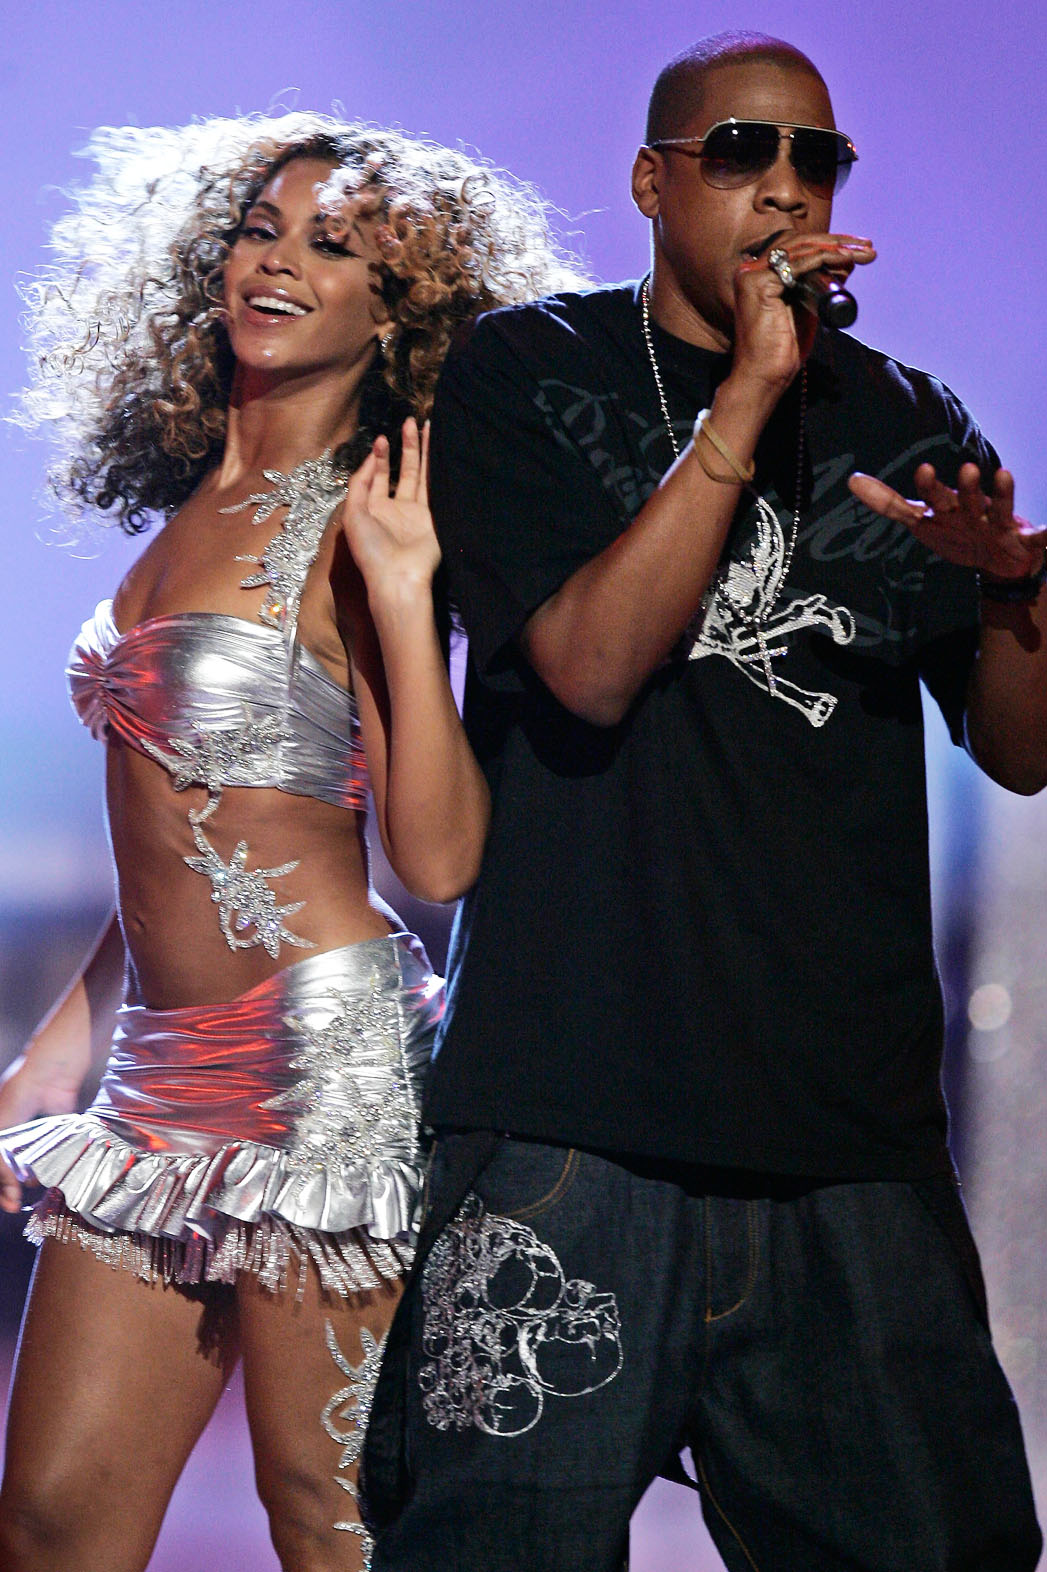 Beyonce and Jay-z Performing 2006 - P 2014